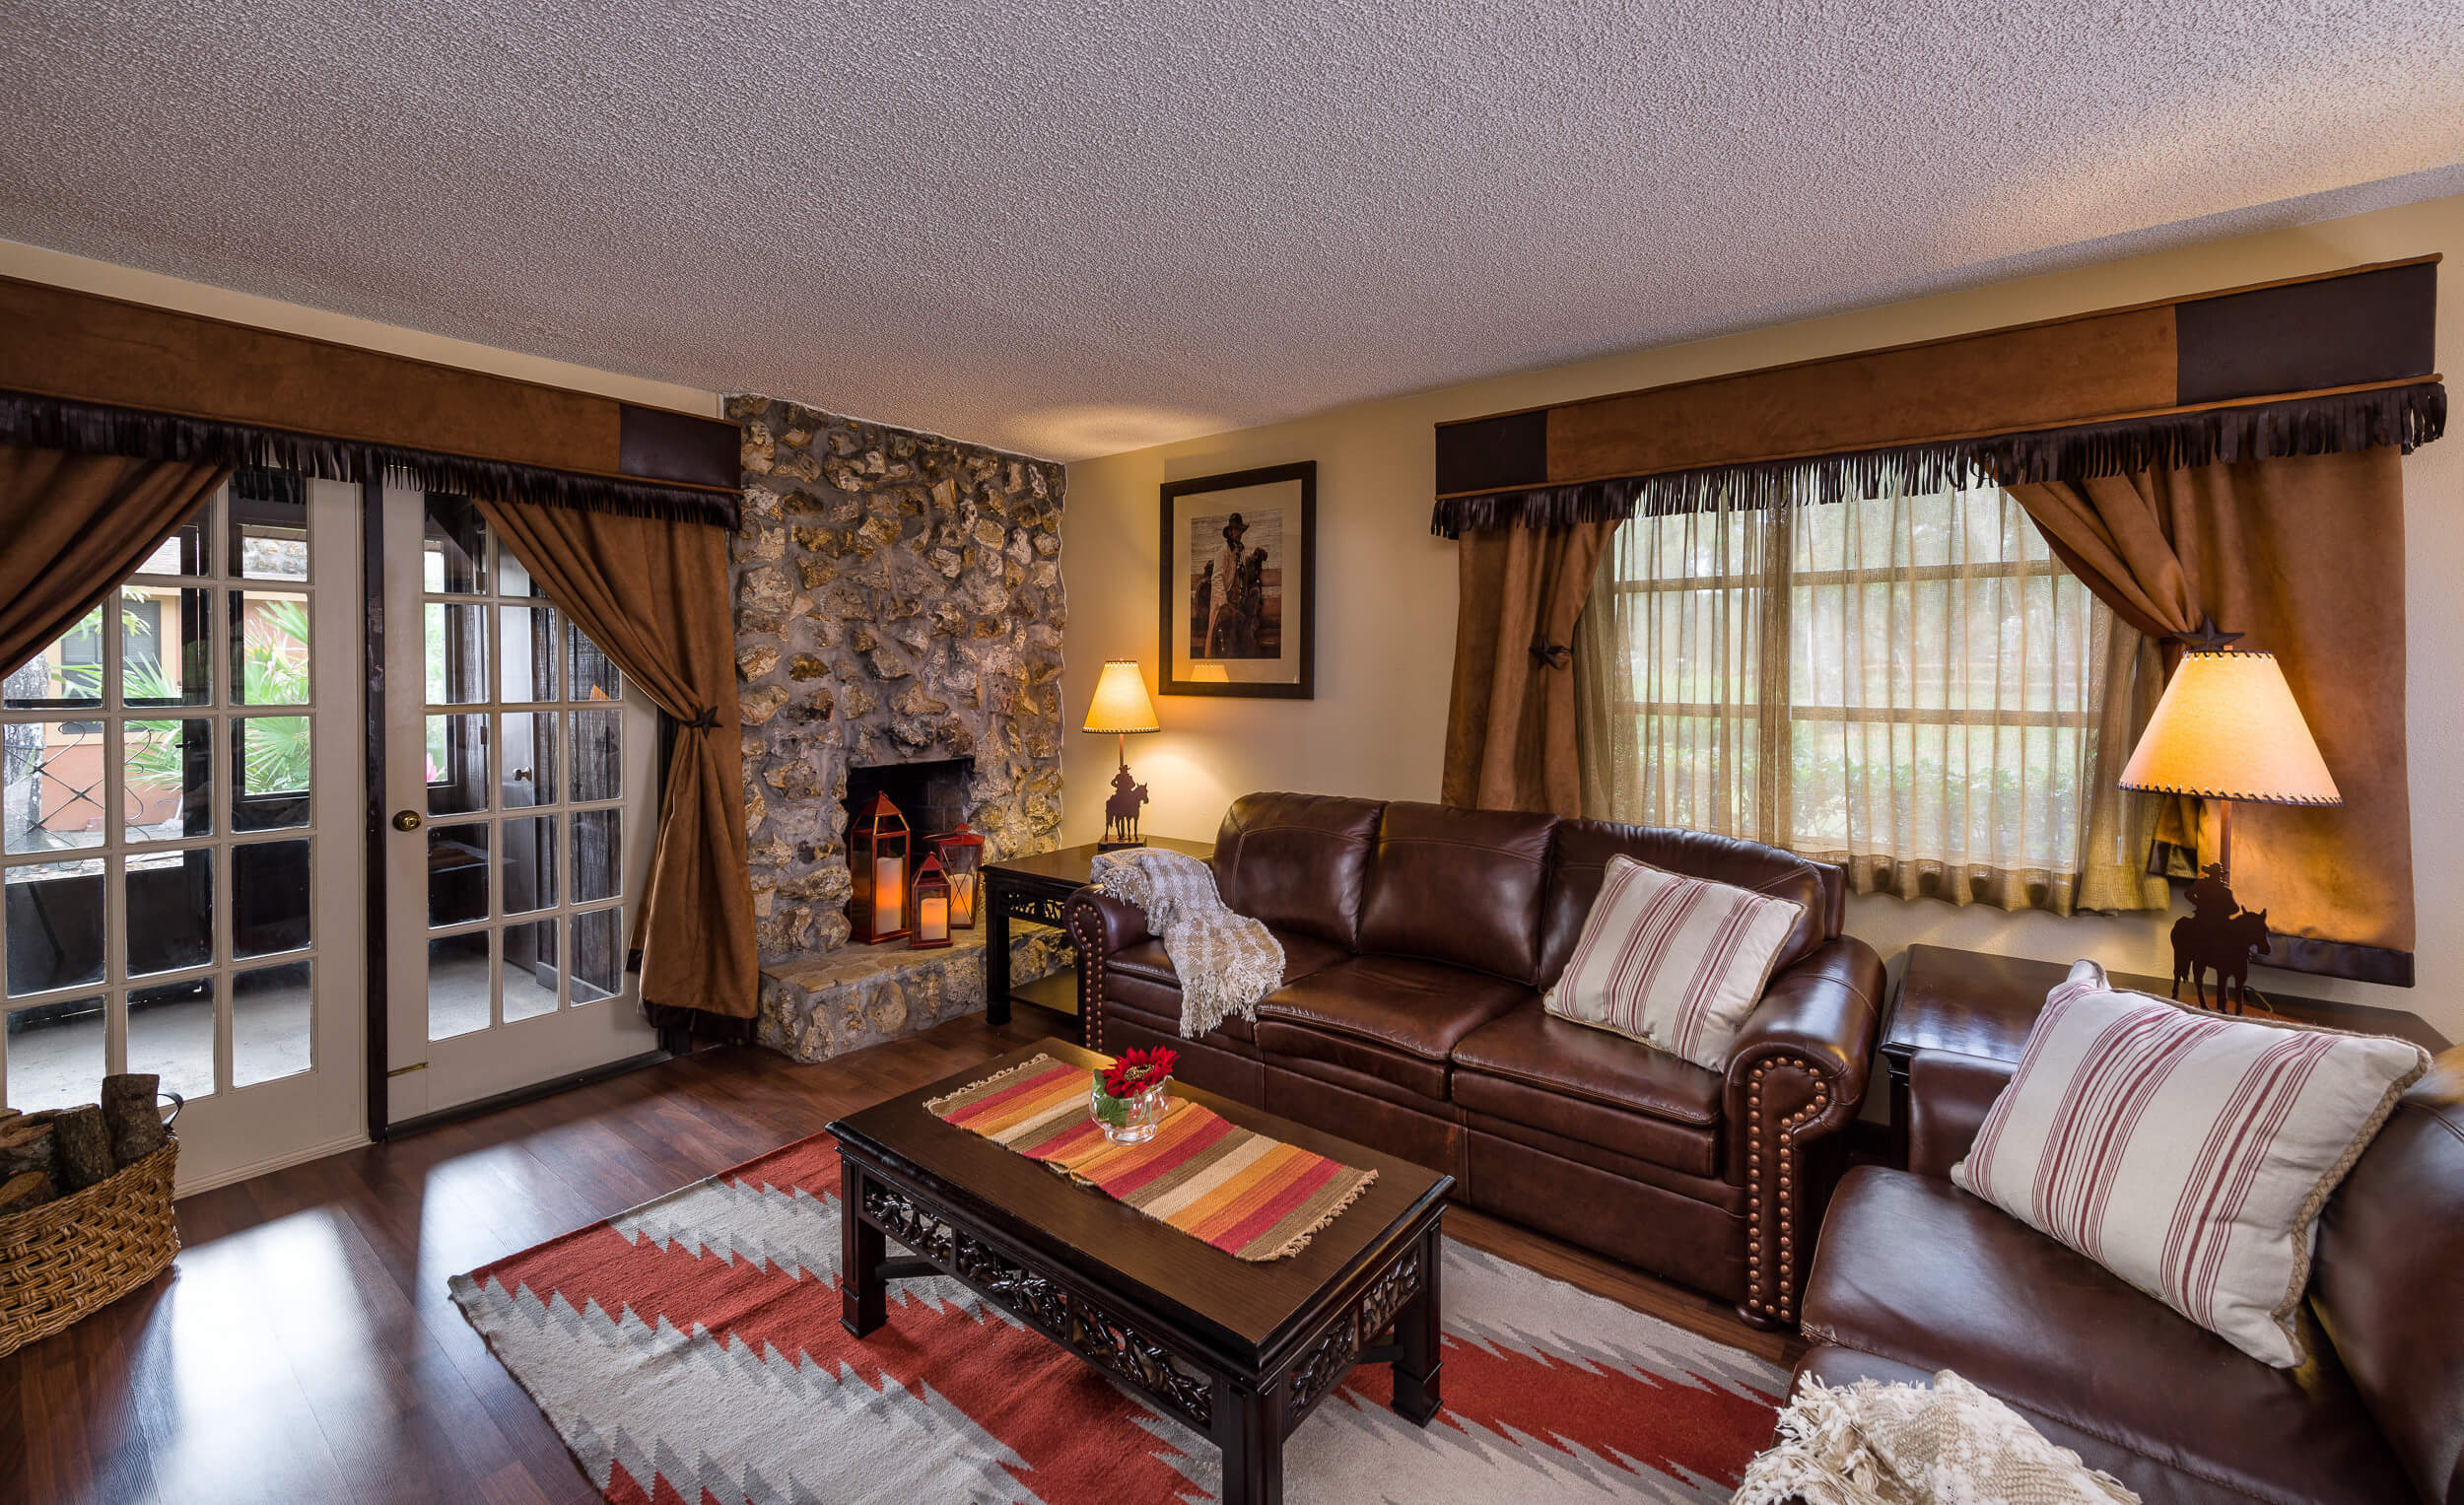 Lodge One-Bedroom Cottage Interior |  Westgate River Ranch Resort & Rodeo | Westgate Resorts